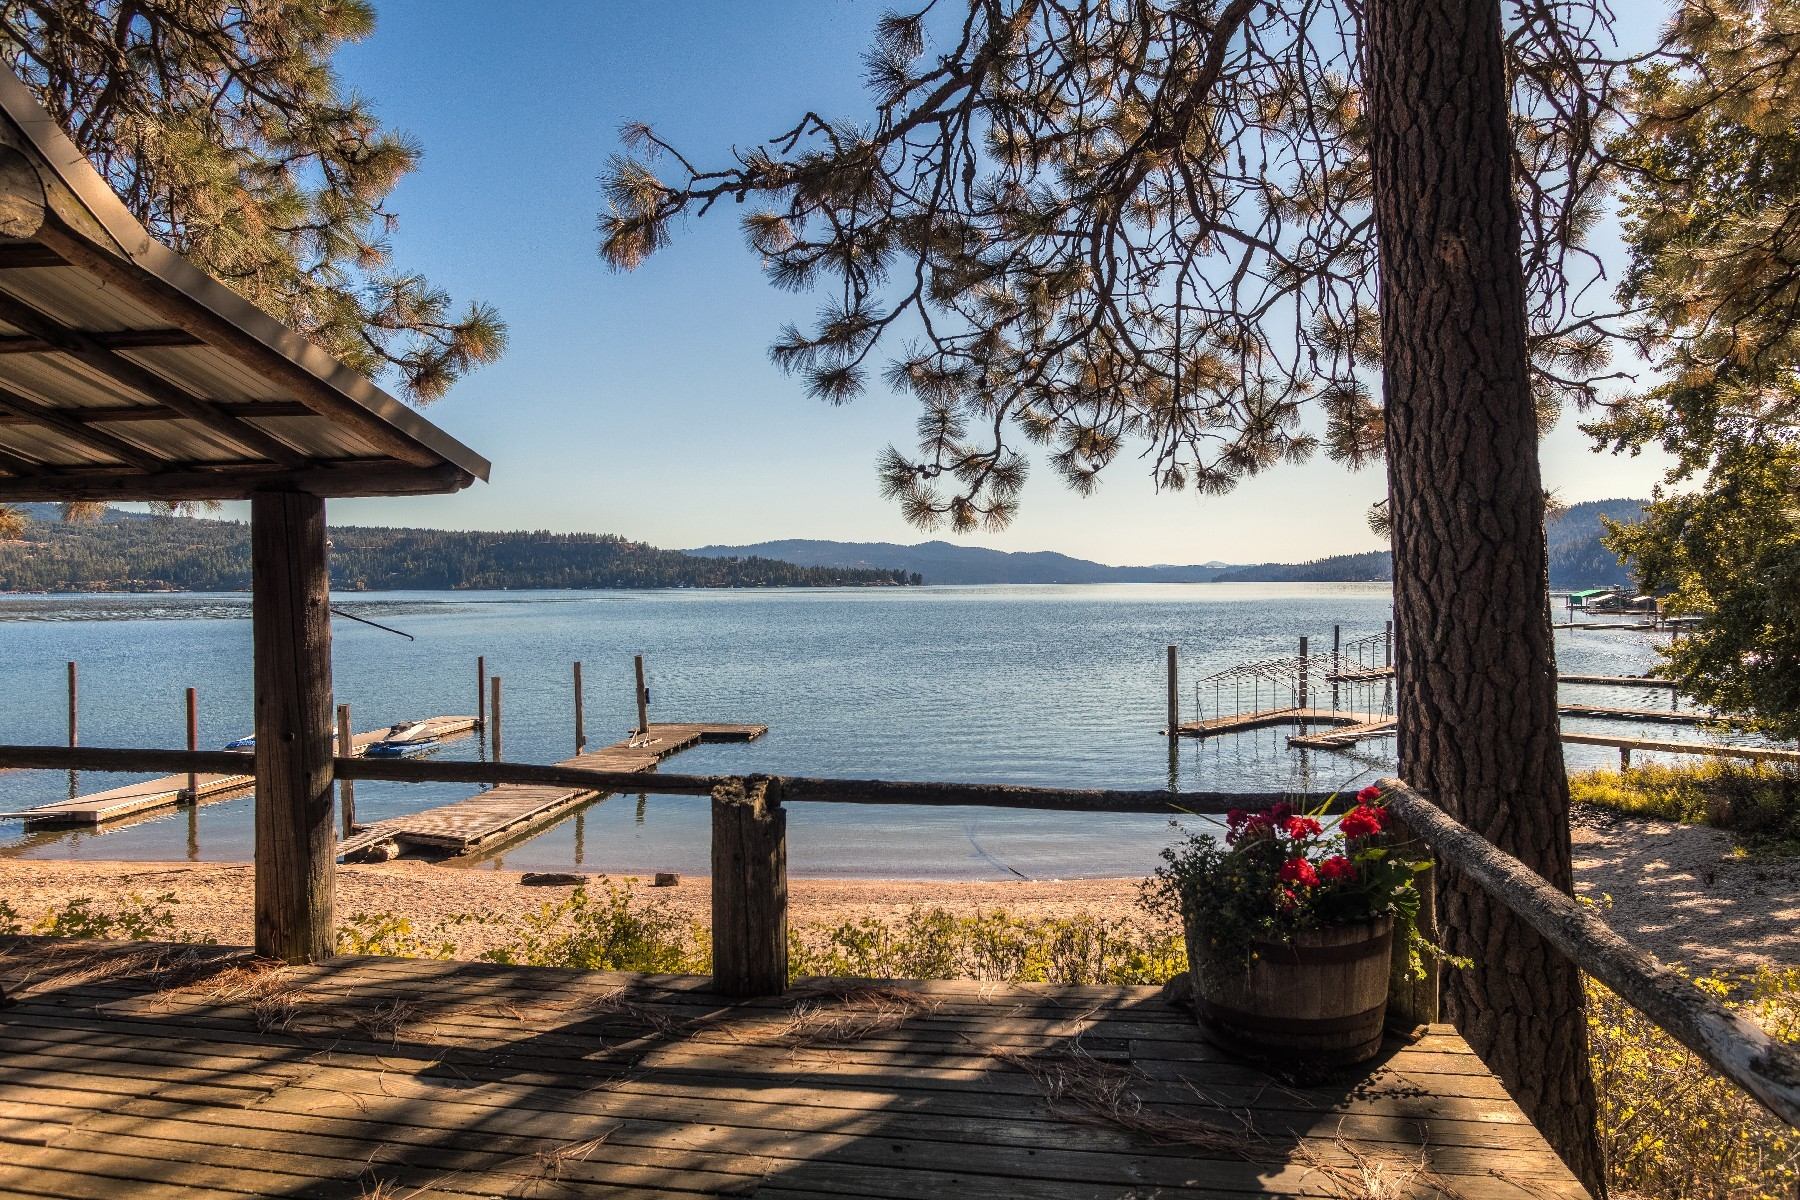 Single Family Homes for Sale at Waterfront Swede Bay Cabin with Acreage 1460 W Swede Bay Rd Coeur D Alene, Idaho 83814 United States